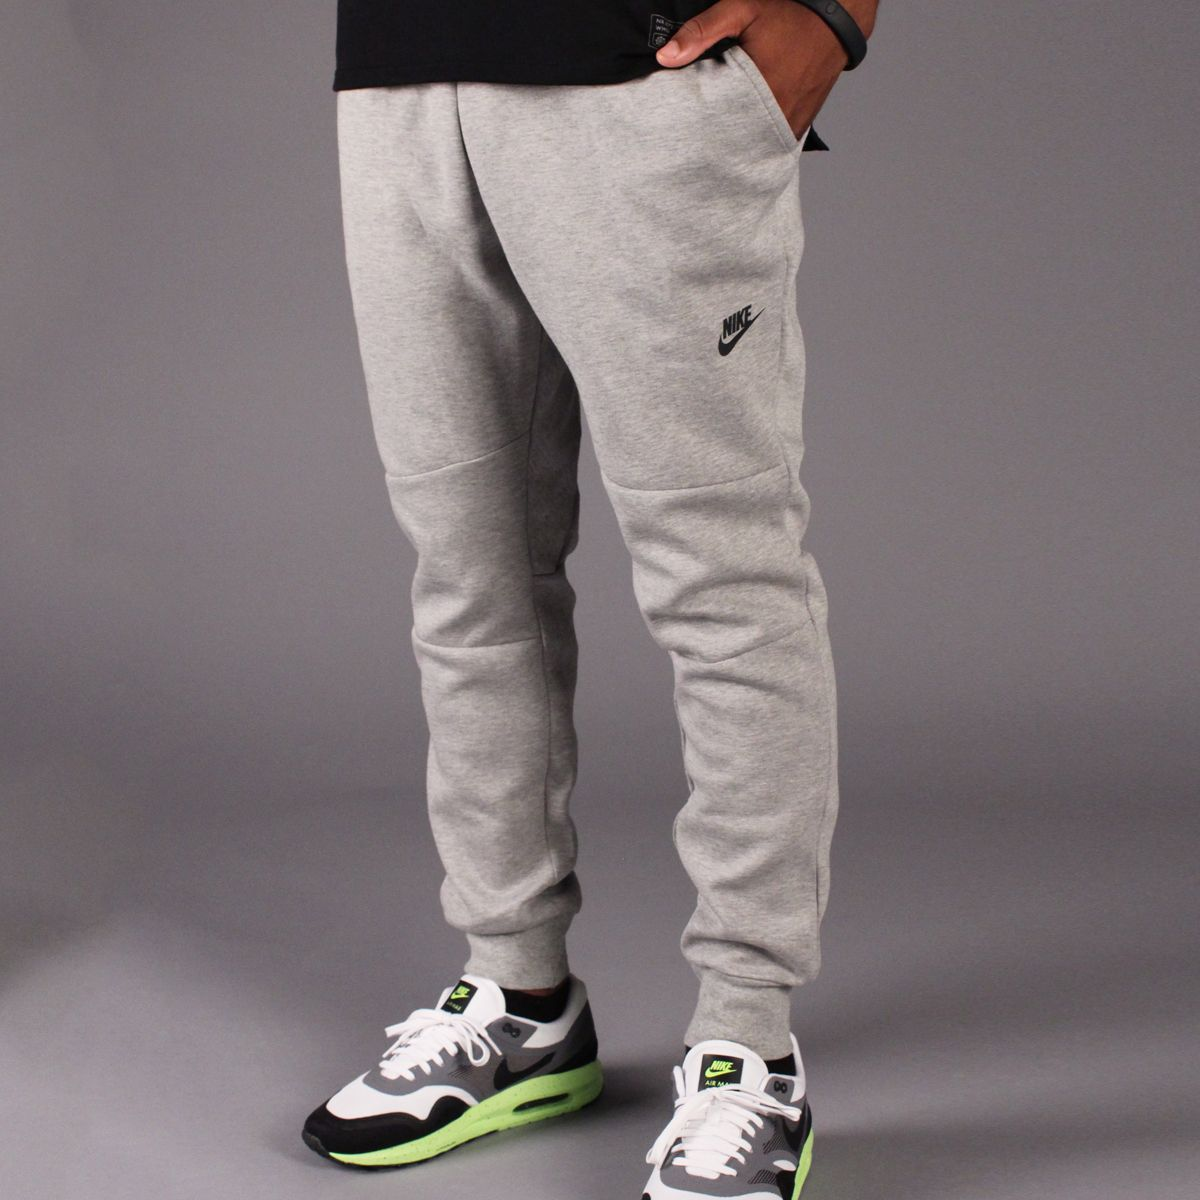 separation shoes 9facc a77e7 Nike Tech Fleece Pant 1MM (Dark Heather Grey Black)